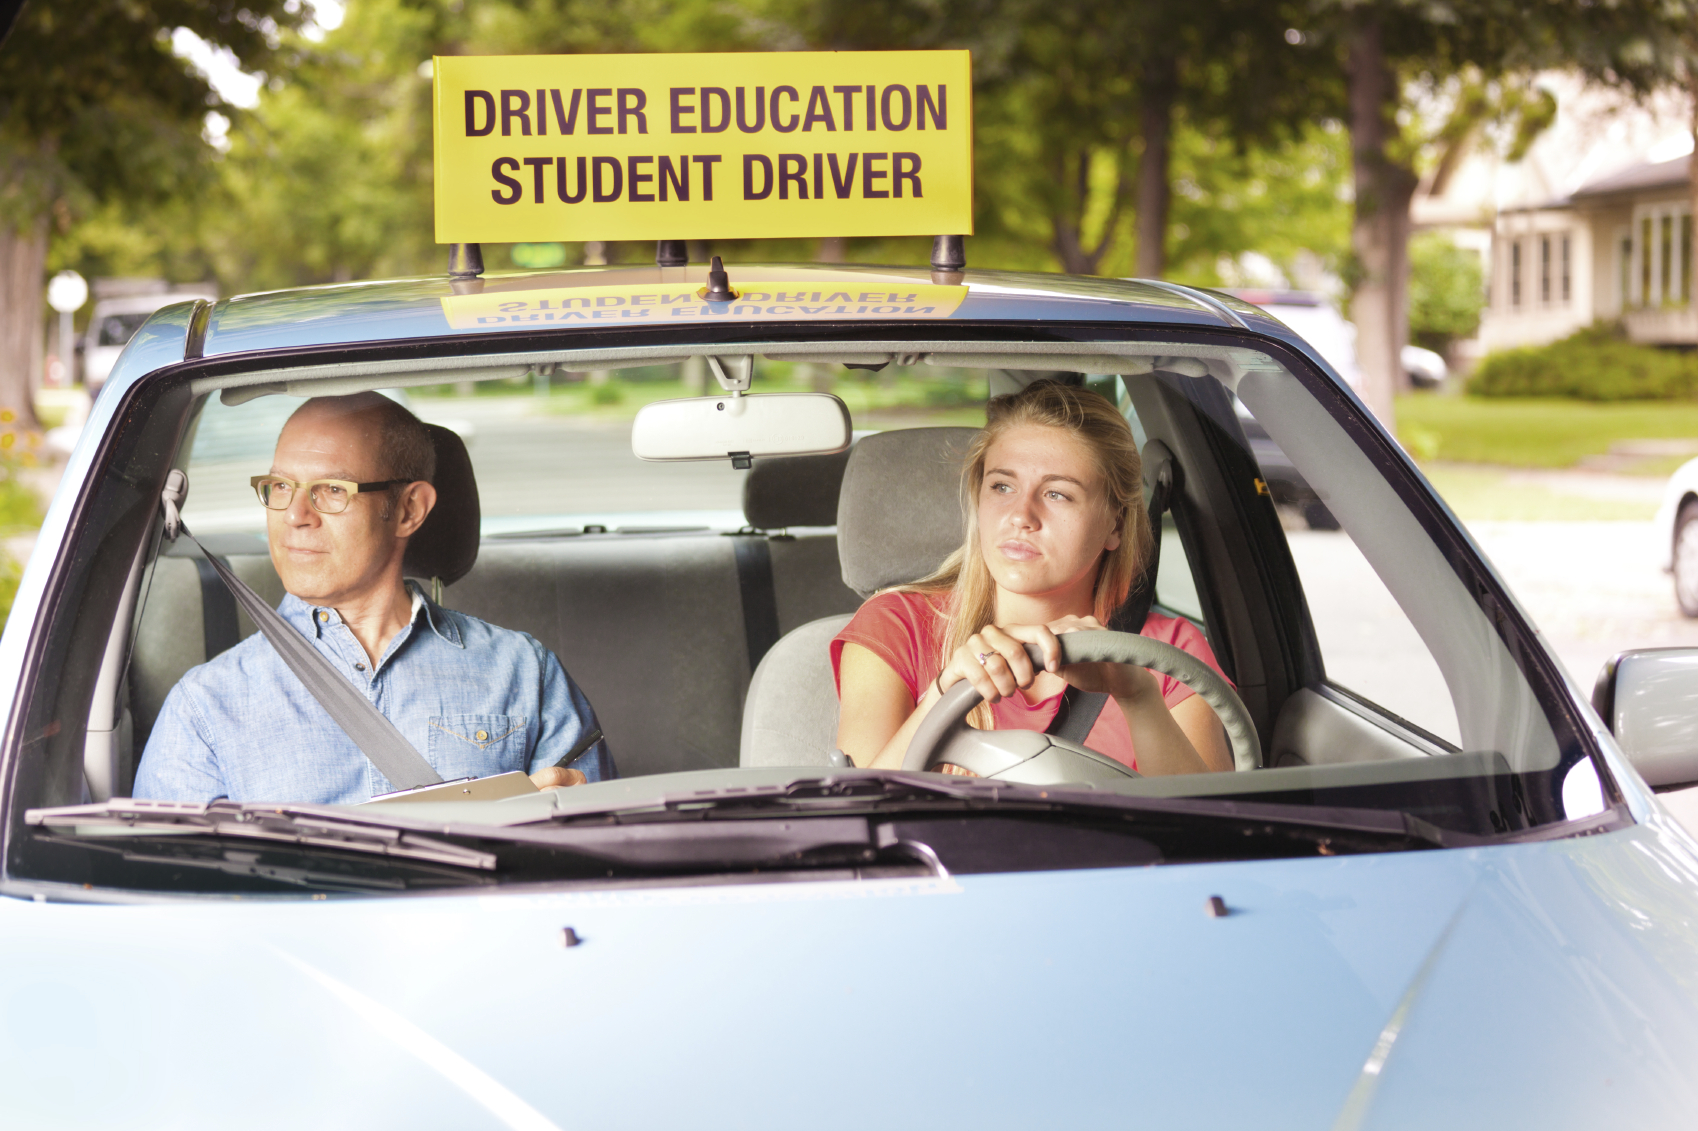 the importance of driving education The importance of civic education should be communicated to the general public through televised public forums, print media, and public service television announcements parents, civic leaders, and the media are important influences and have significant contributions to make to civic education, and their support should be enlisted.